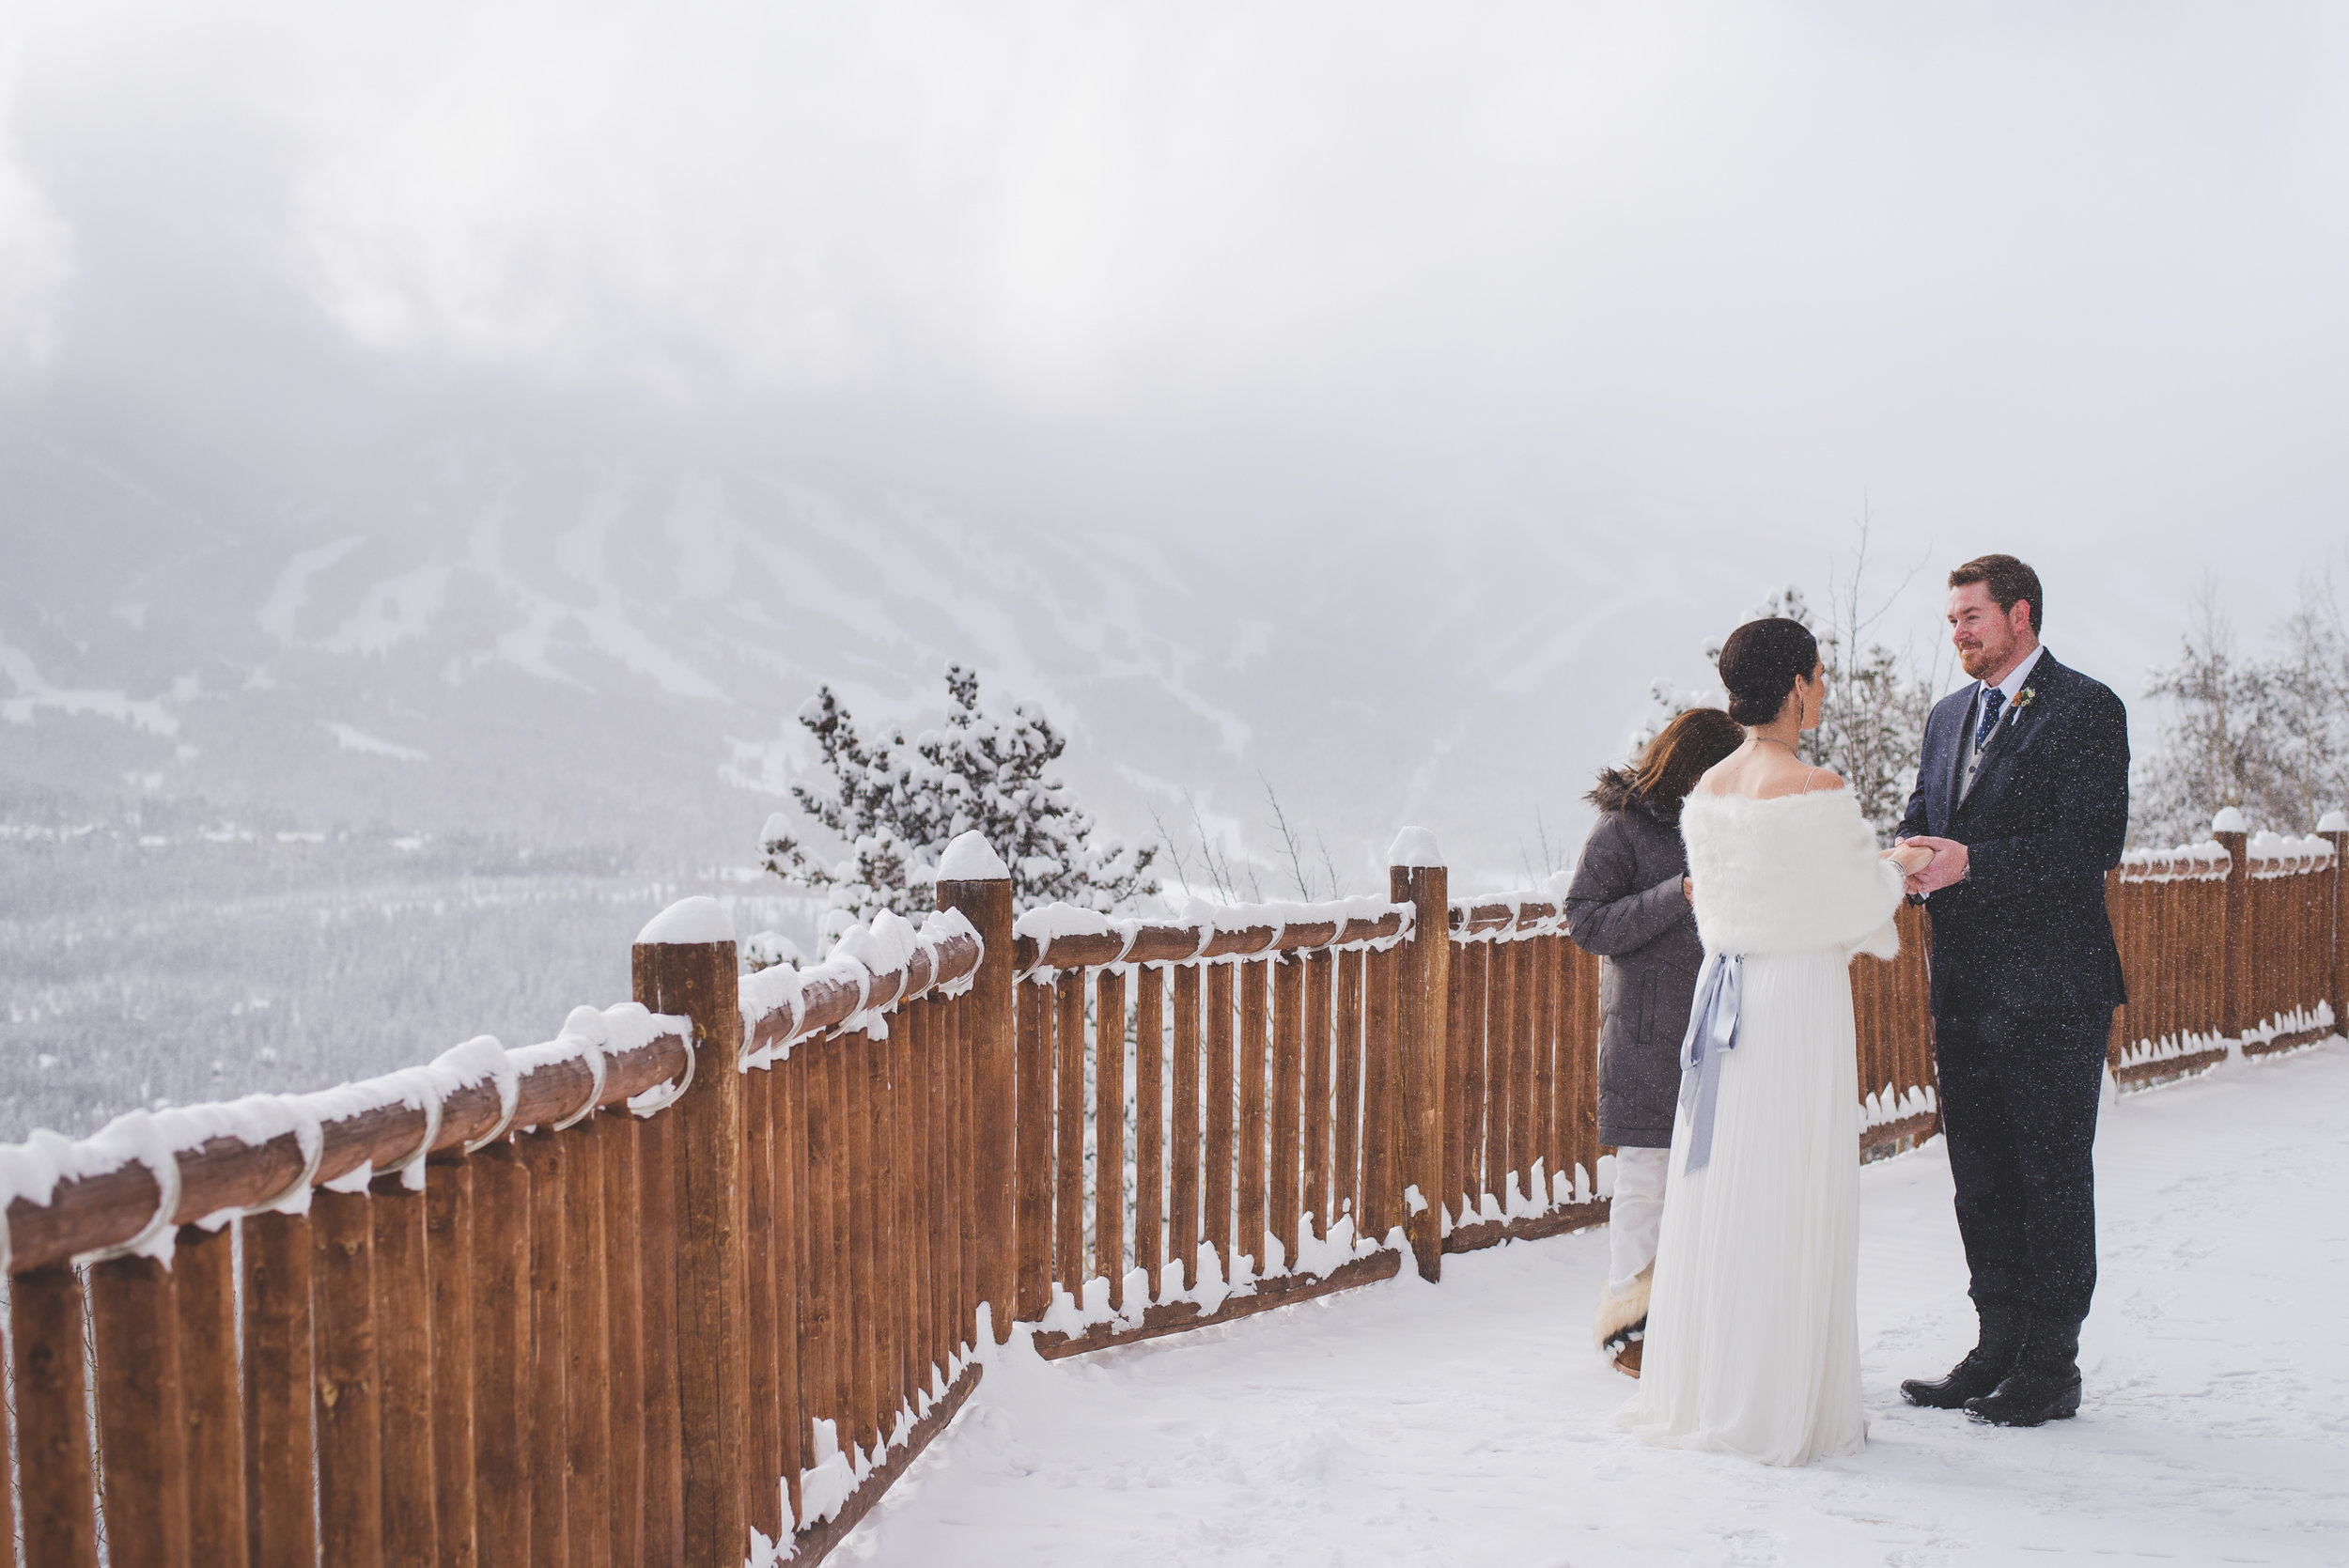 a couple elopes on the lower deck at the lodge at breckenridge, overlooking the ski runs at the resort that barely peek through the low clouds | photo by keeping composure photography